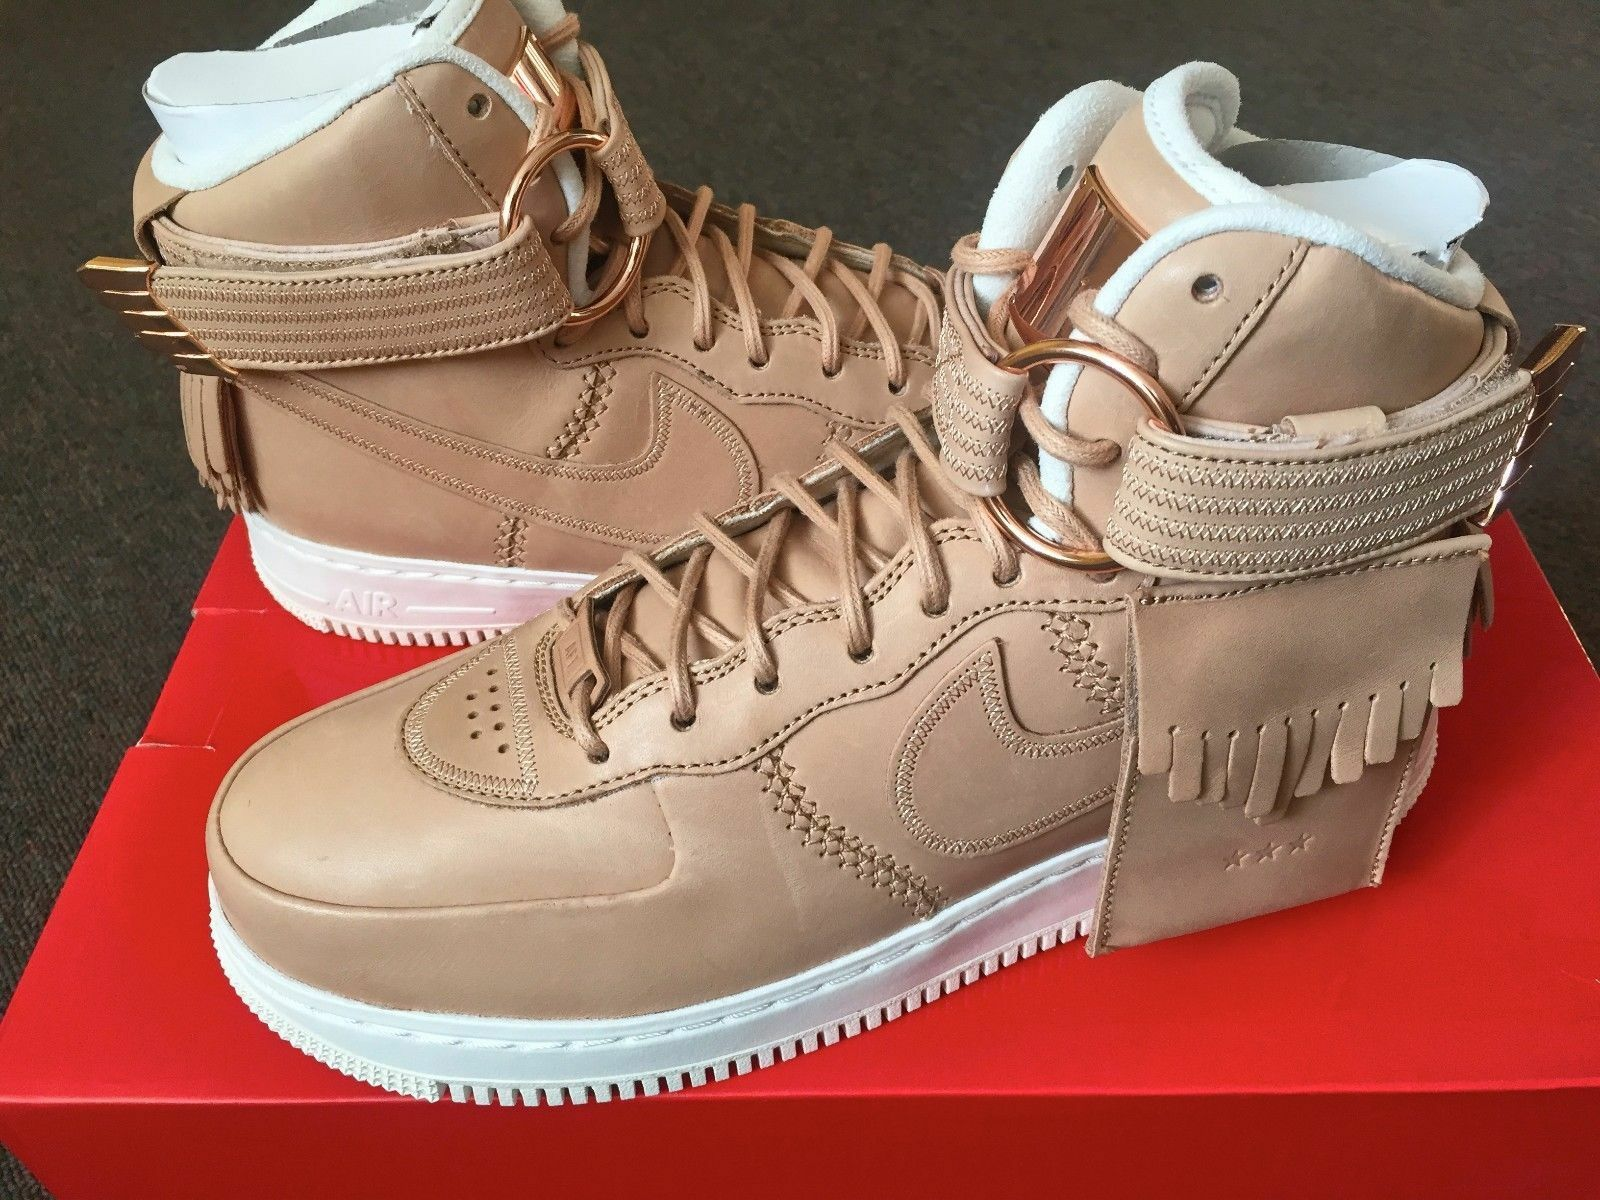 Nike Air Force 1 tan de alto SL vachetta tan 1 5 décadas All Star Lux 9194732018 AF1 como d48a25